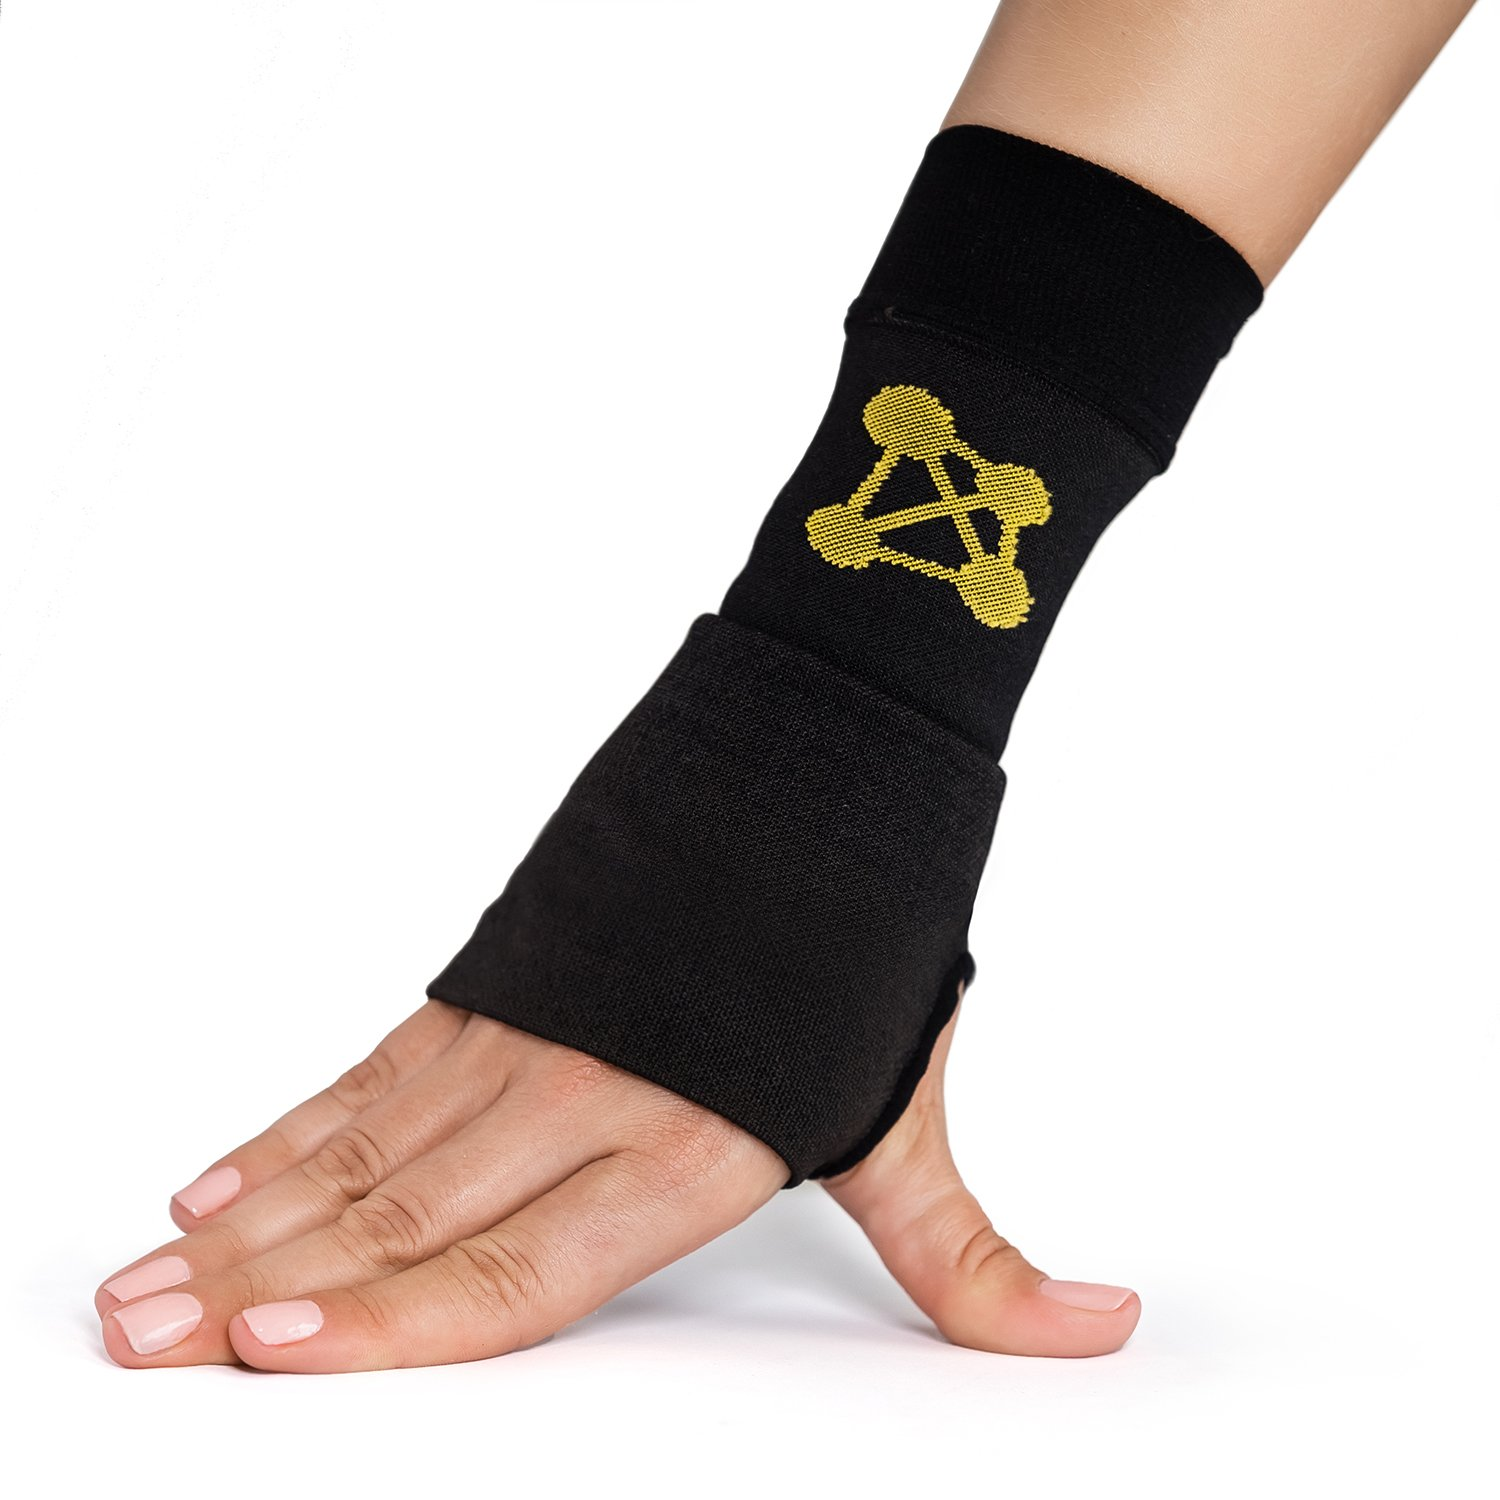 CopperJoint Copper Wrist Support